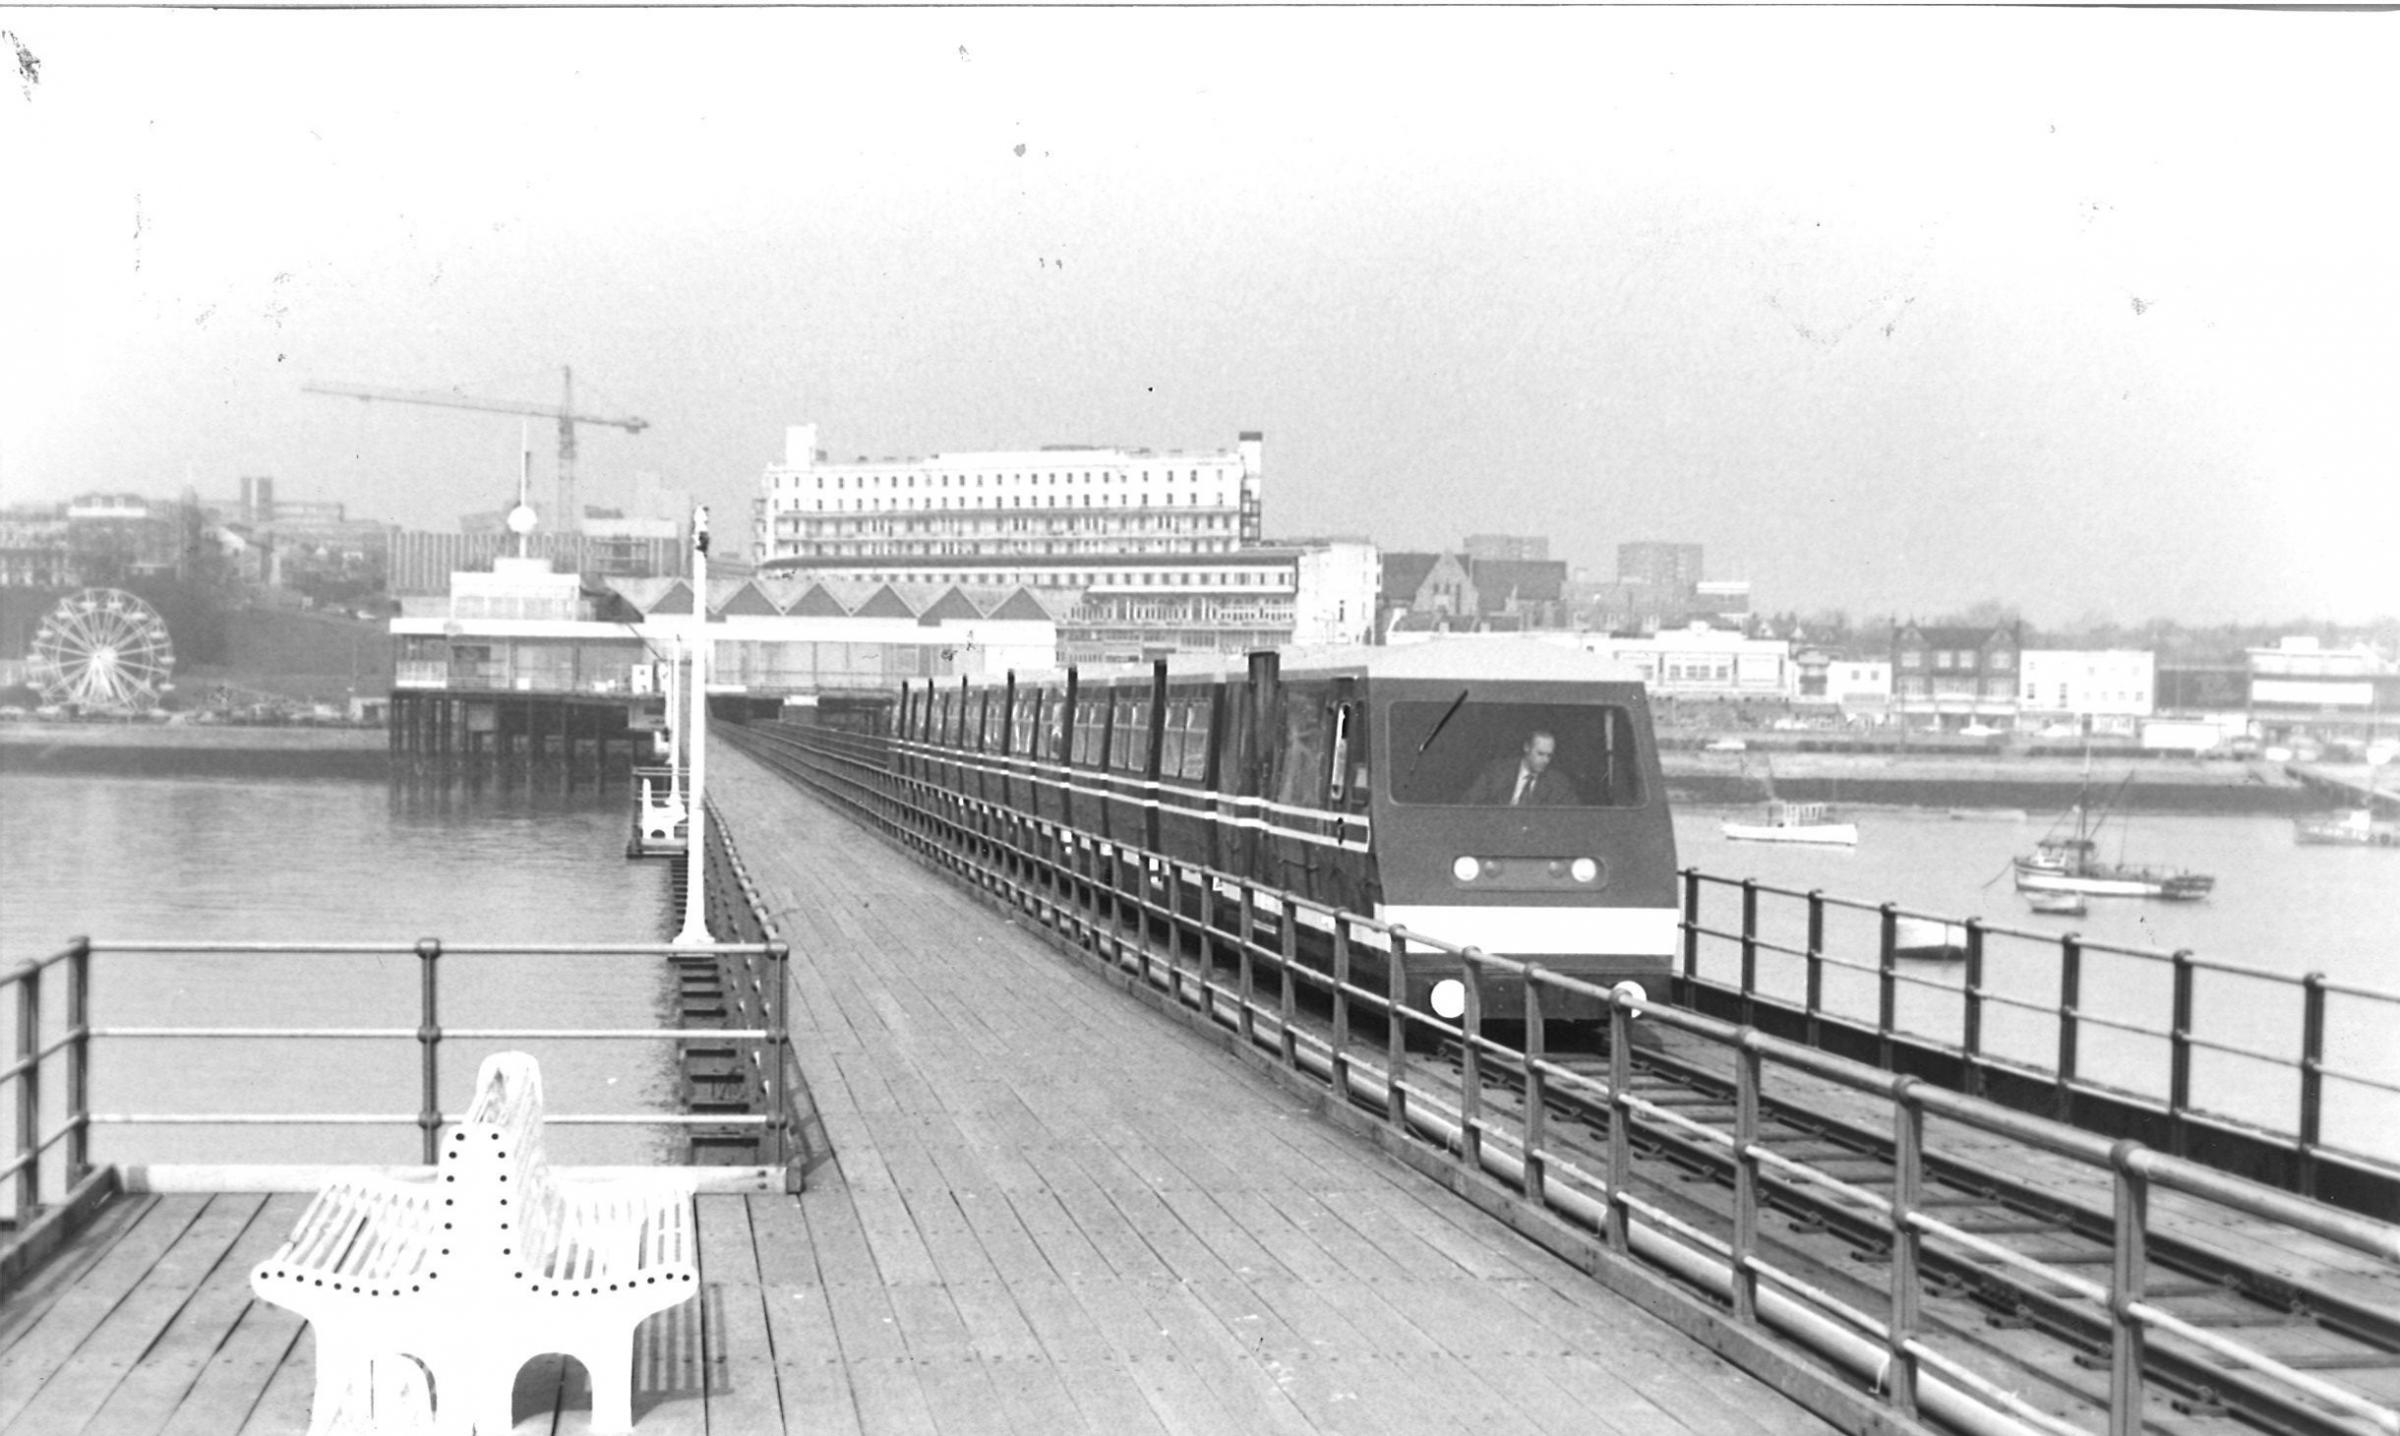 New - this picture shows a pier train shortly after they were introduced in 1986